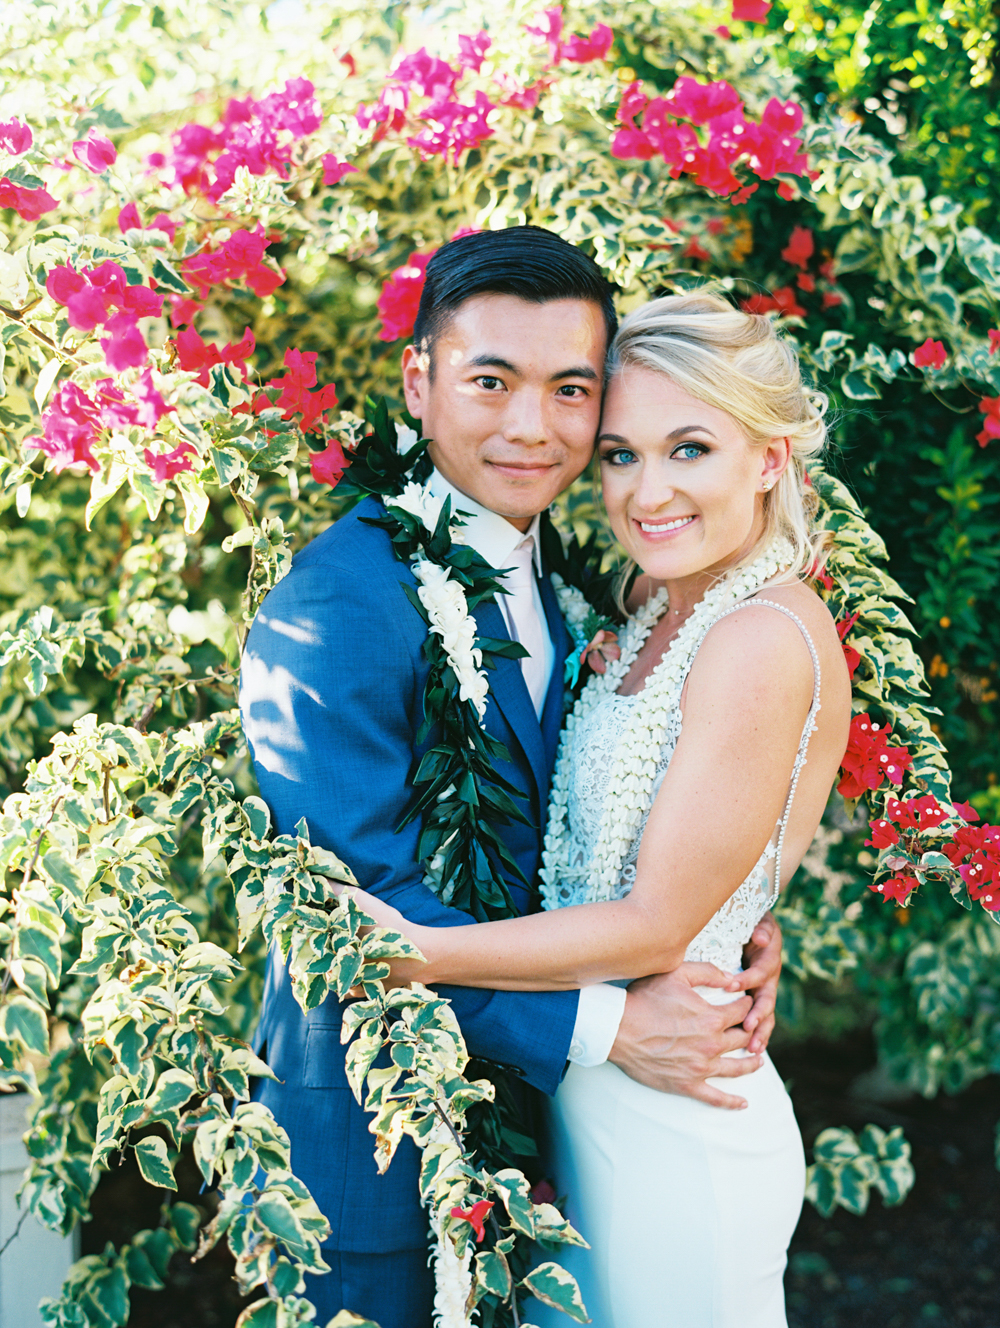 colorful fun hip maui wedding at sugar beach featured on 100 layer cake by maui photographer wendy laurel